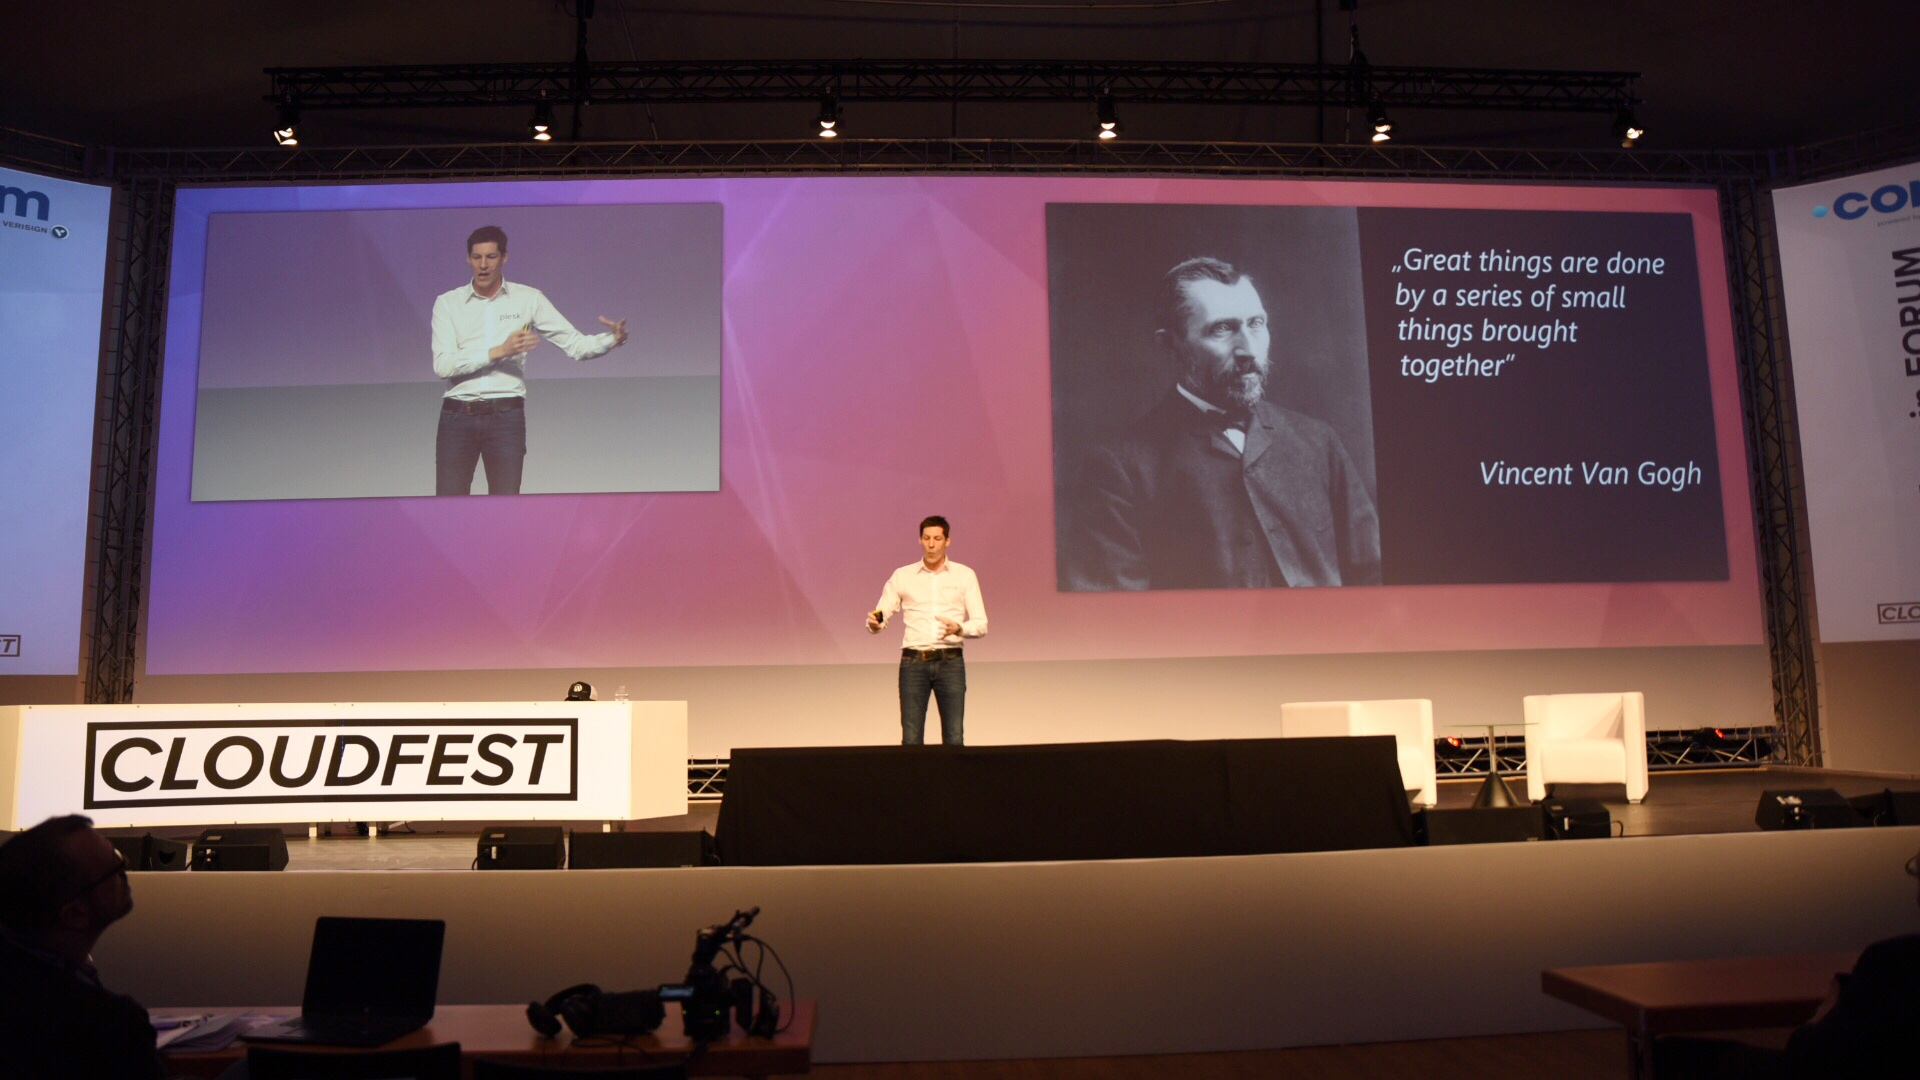 Plesk Cloudfest 2018 Talk by Jan Loeffler - Great things are done by a series of small things brought together - Van Gogh